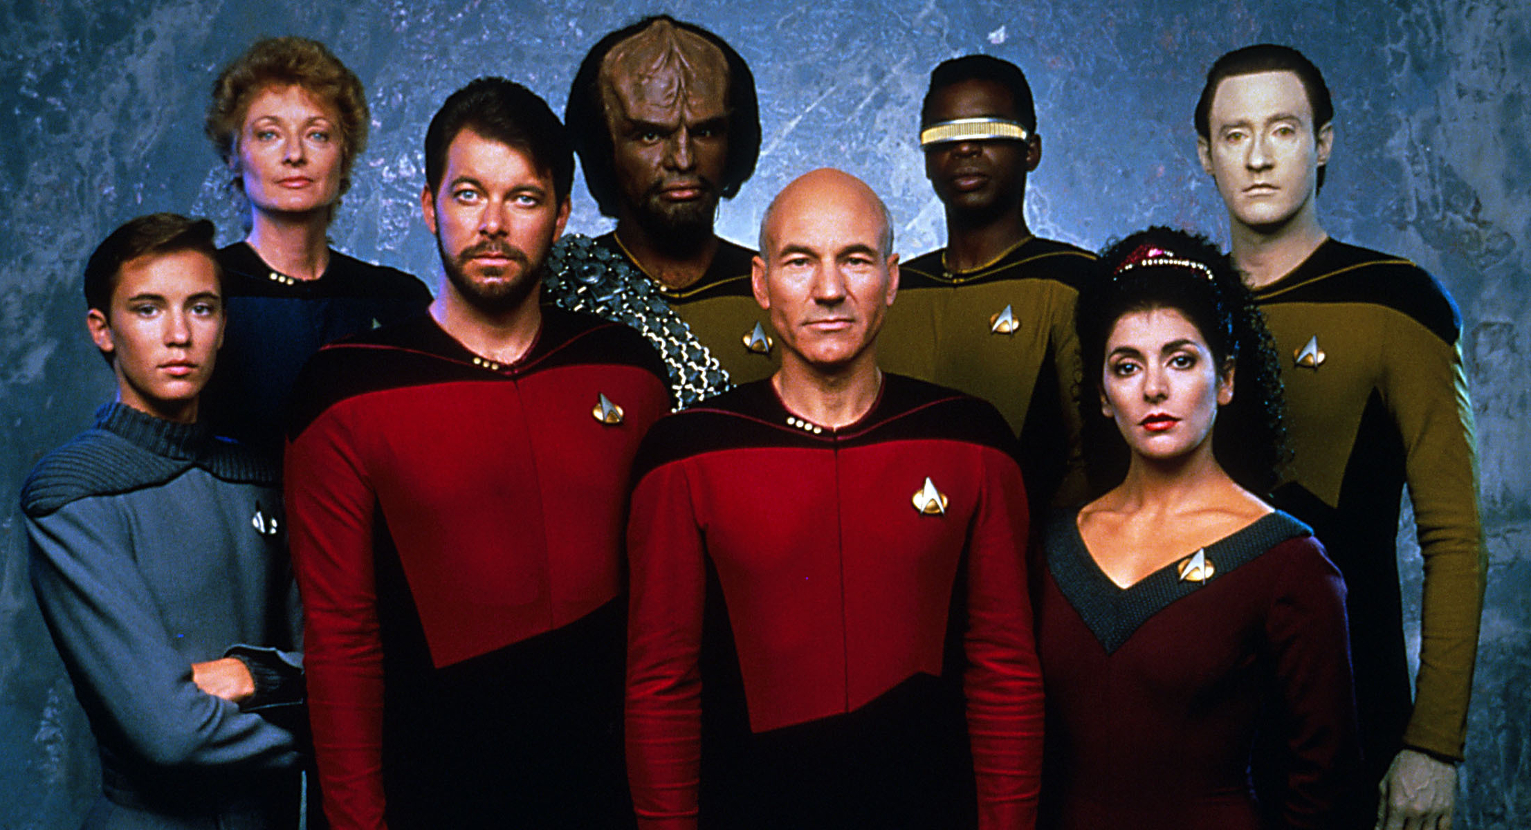 cast of Star Trek: The Next Generation standing in front of a blue background